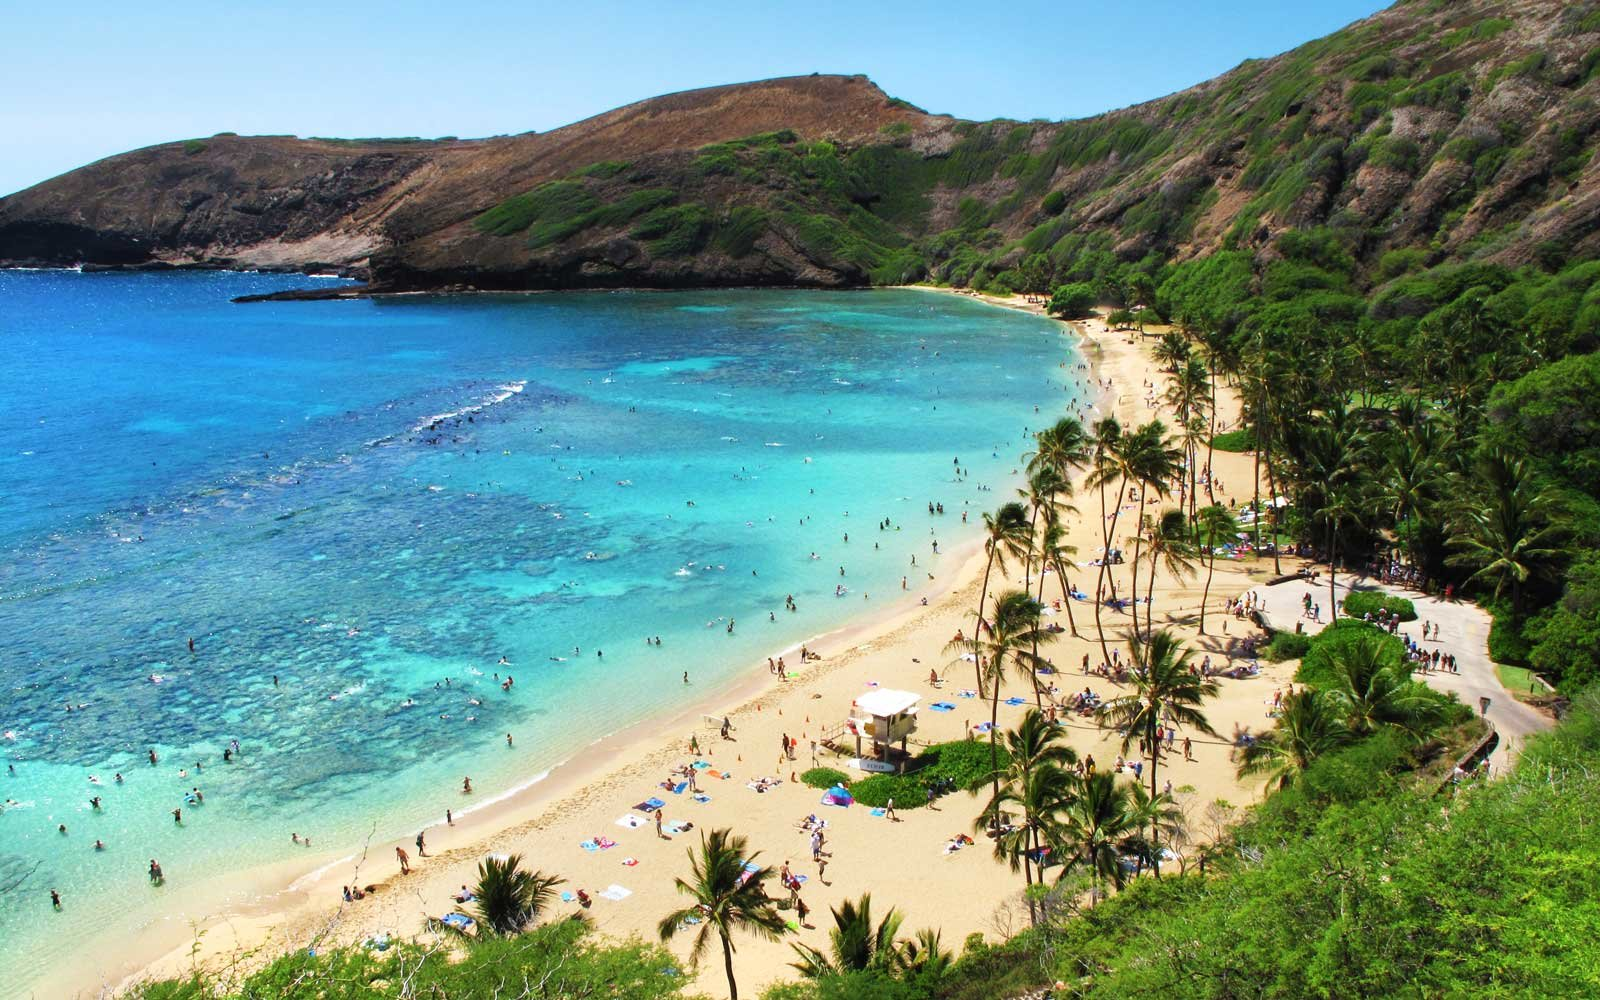 Hanauma Bay, Honolulu, on the Island of O'ahu, Hawaii